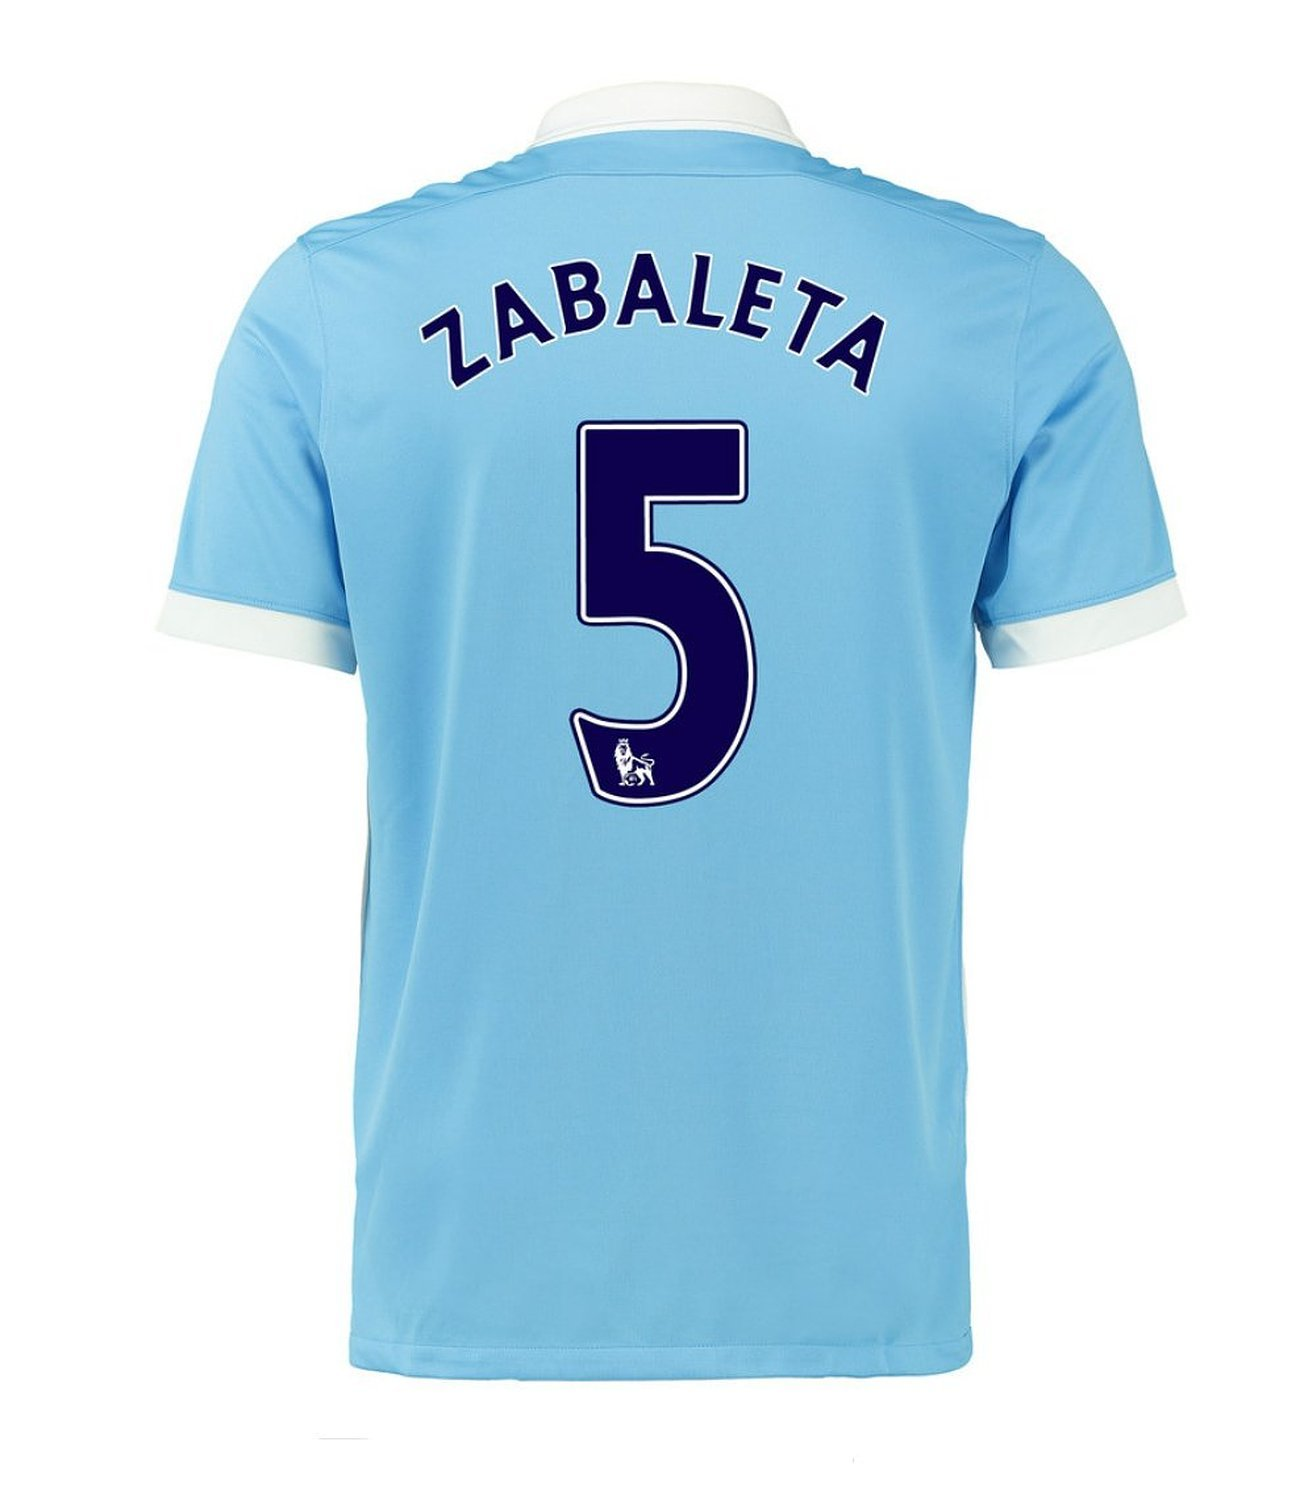 Nike Zabaleta #5 Manchester City Home Soccer Jersey 2015(Authentic name and number of player)/サッカーユニフォーム マンチェスターシティ FC サバレタ 背番号5 2015 B016J4AVO0 X-Large